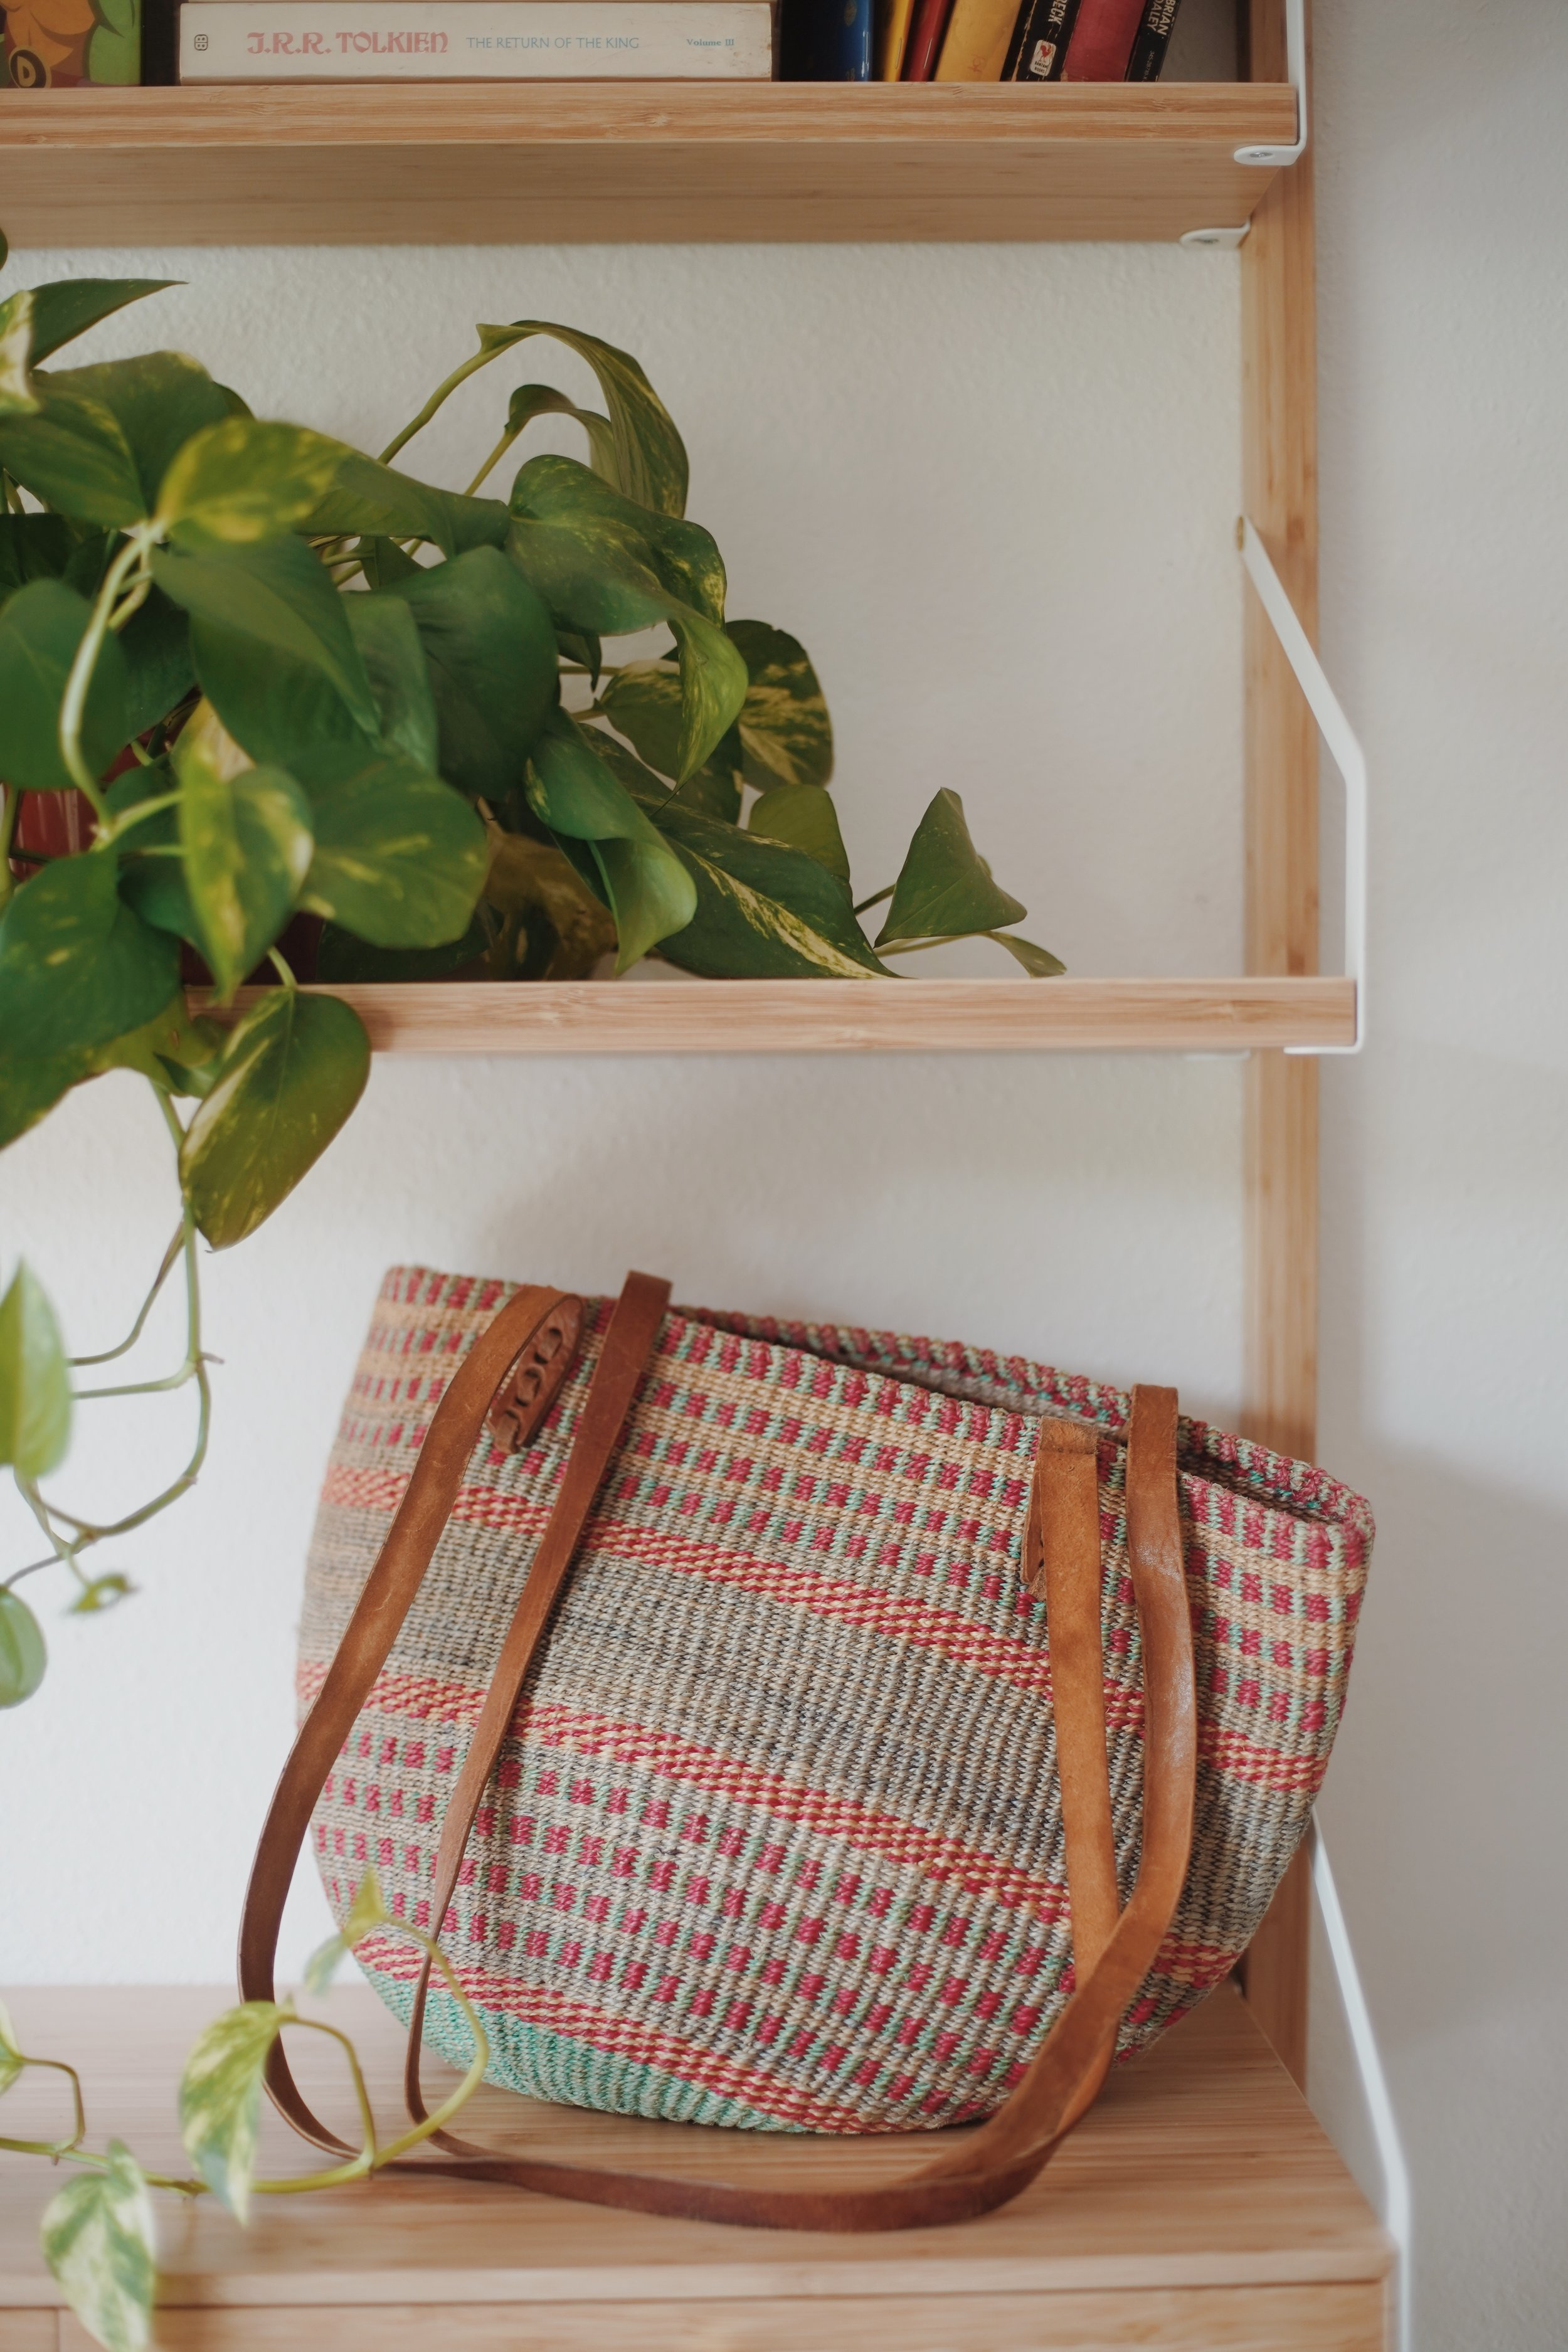 vtg woven bag - This woven bag is one of my favorite thrift finds to date. I found it at my local goodwill around Christmas in 2010. My wardrobe is pretty neutral, and I love the pop of color it provides. I always get compliments on it when I wear it! It was $4.99!!